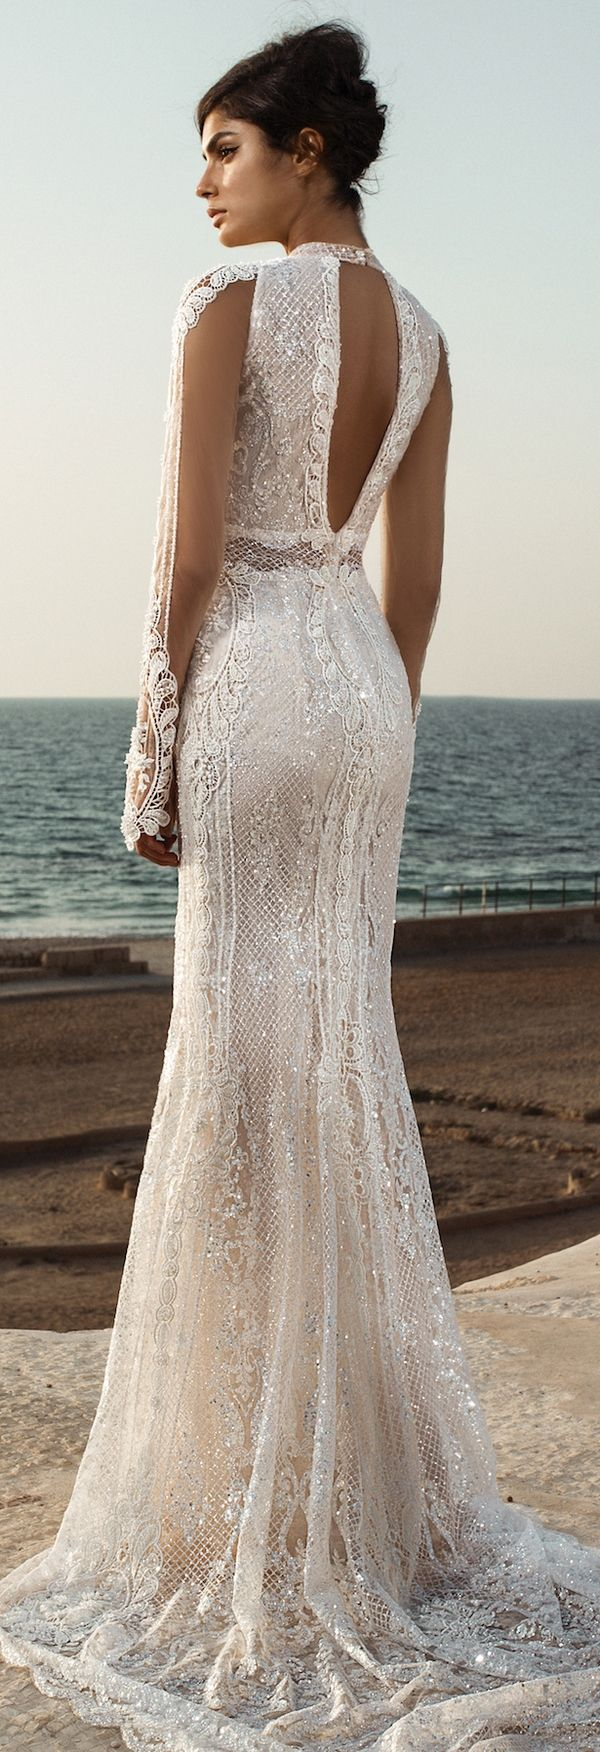 Best 25+ Fall wedding gowns ideas only on Pinterest | Vintage ...